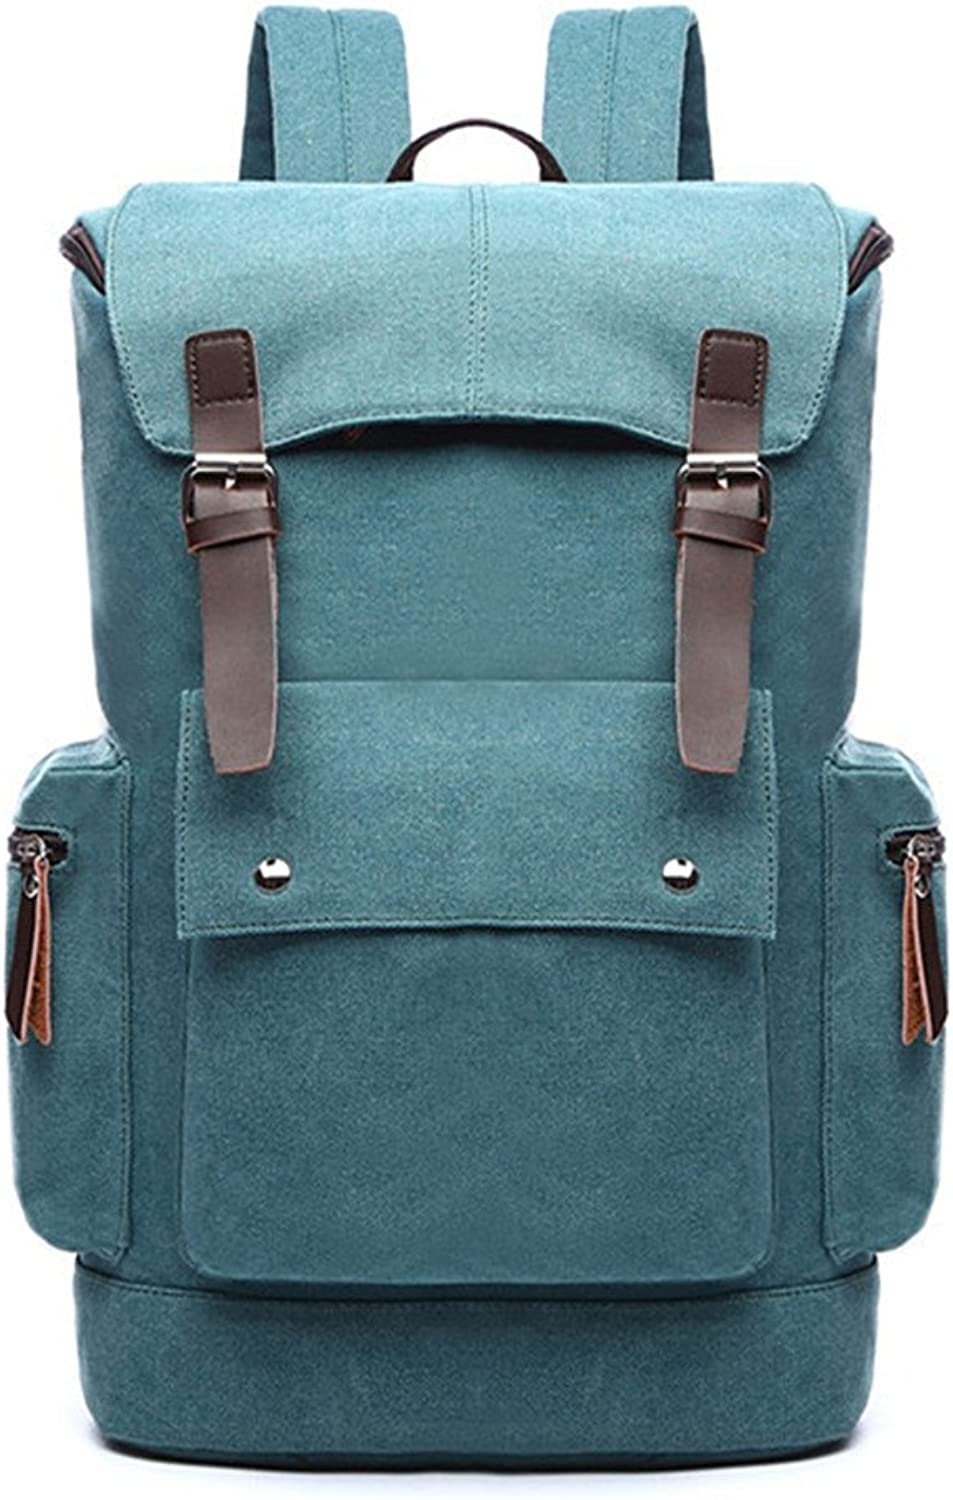 Backpacks Durable Canvas Hiking Backpack Outdoor Camping Leisure Travel MultiFunction Bag (color   Light Green)